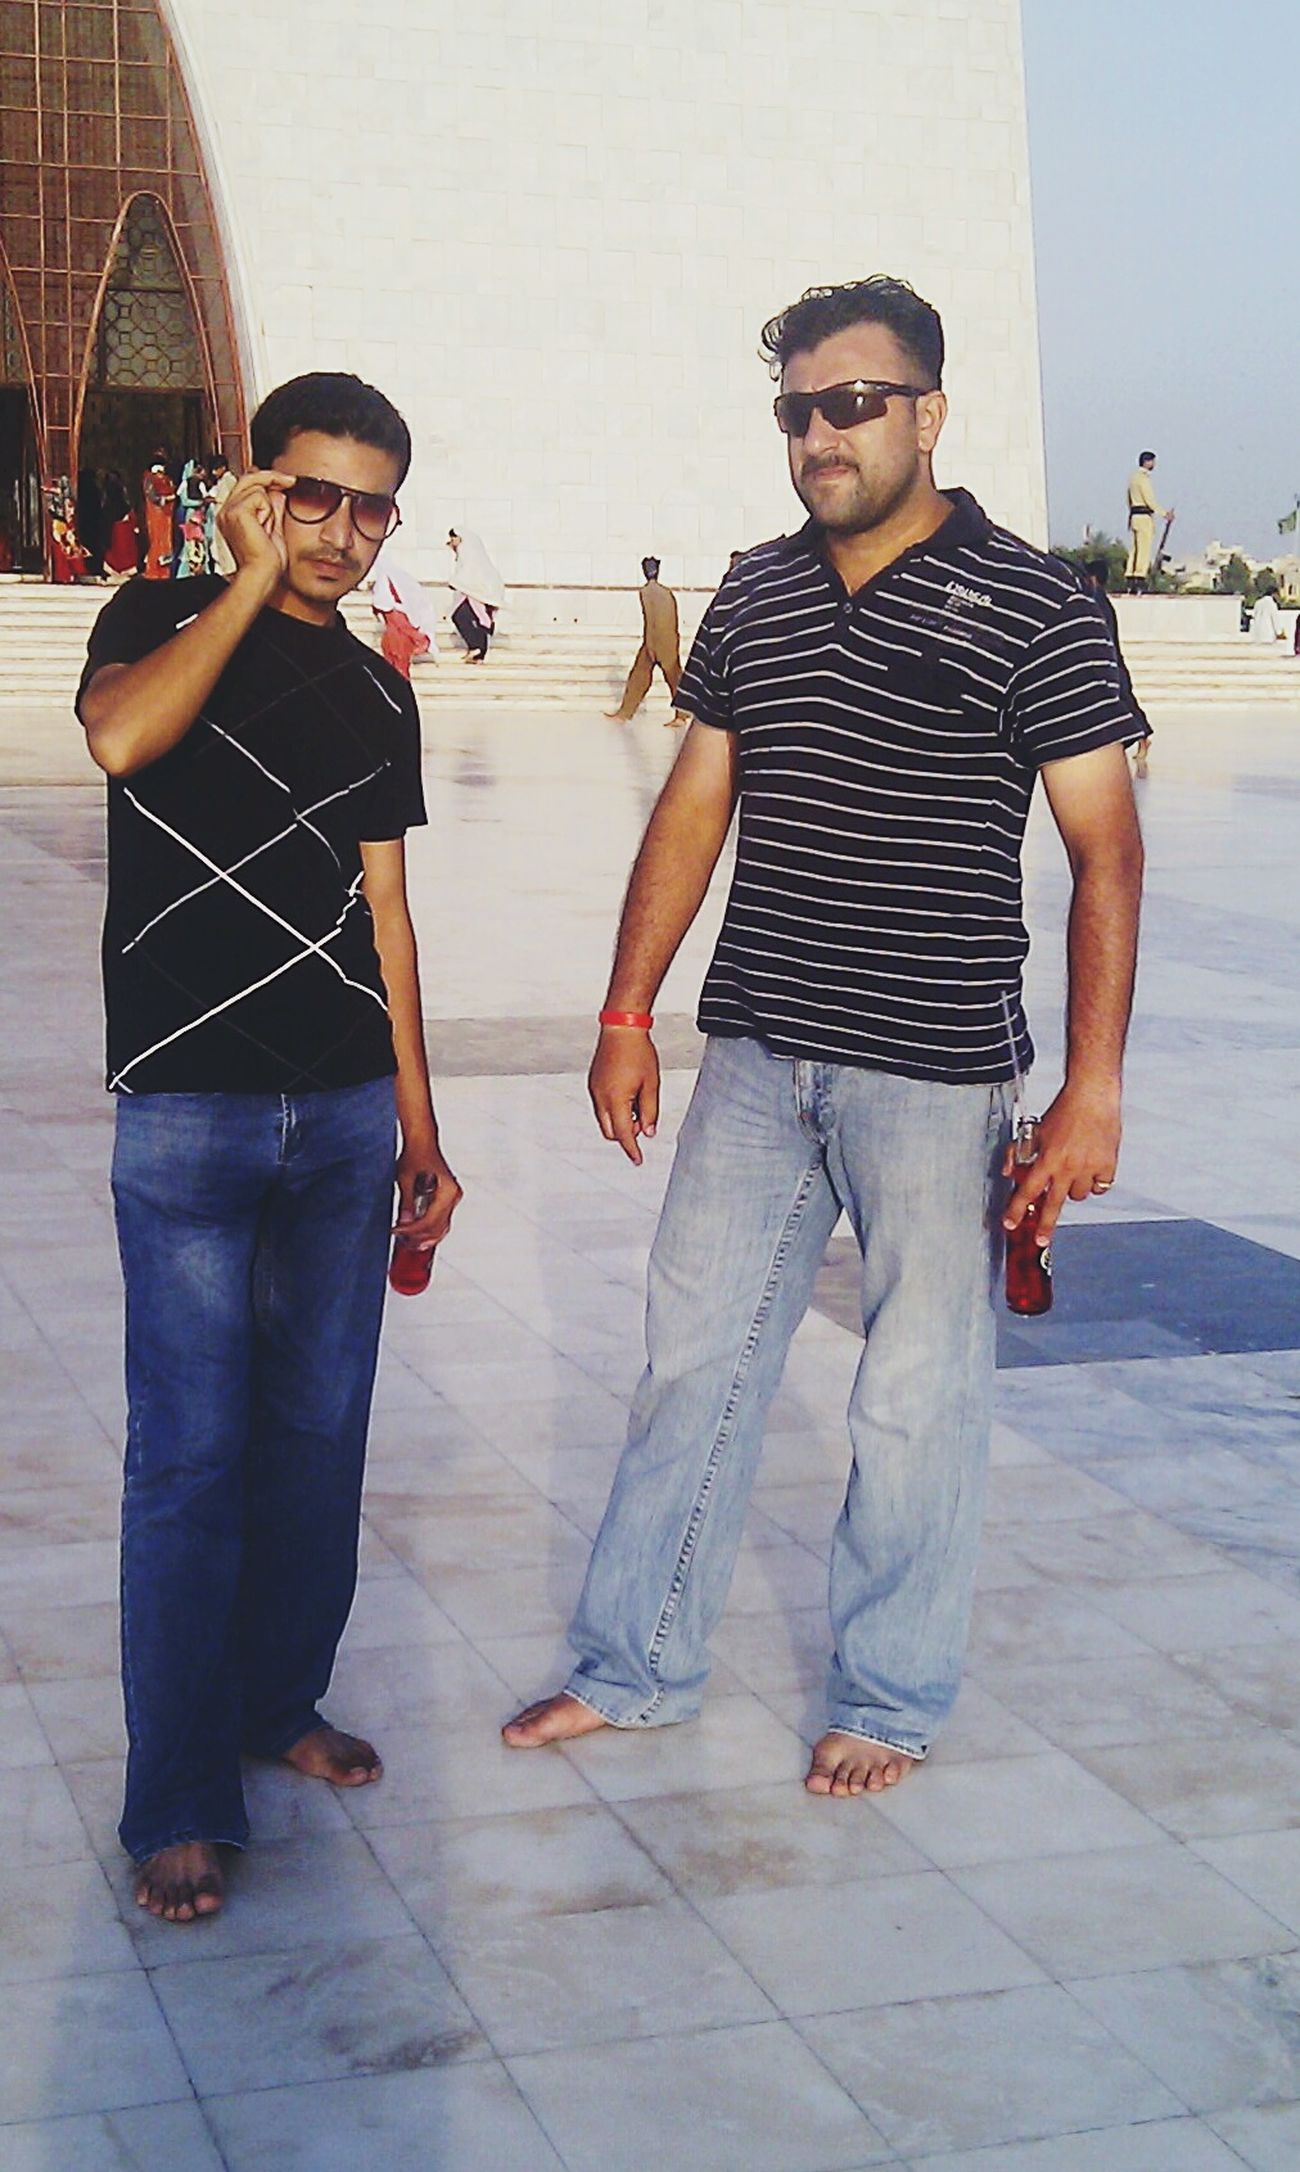 Karachi Mazar-e-Quaid Friendship Forever